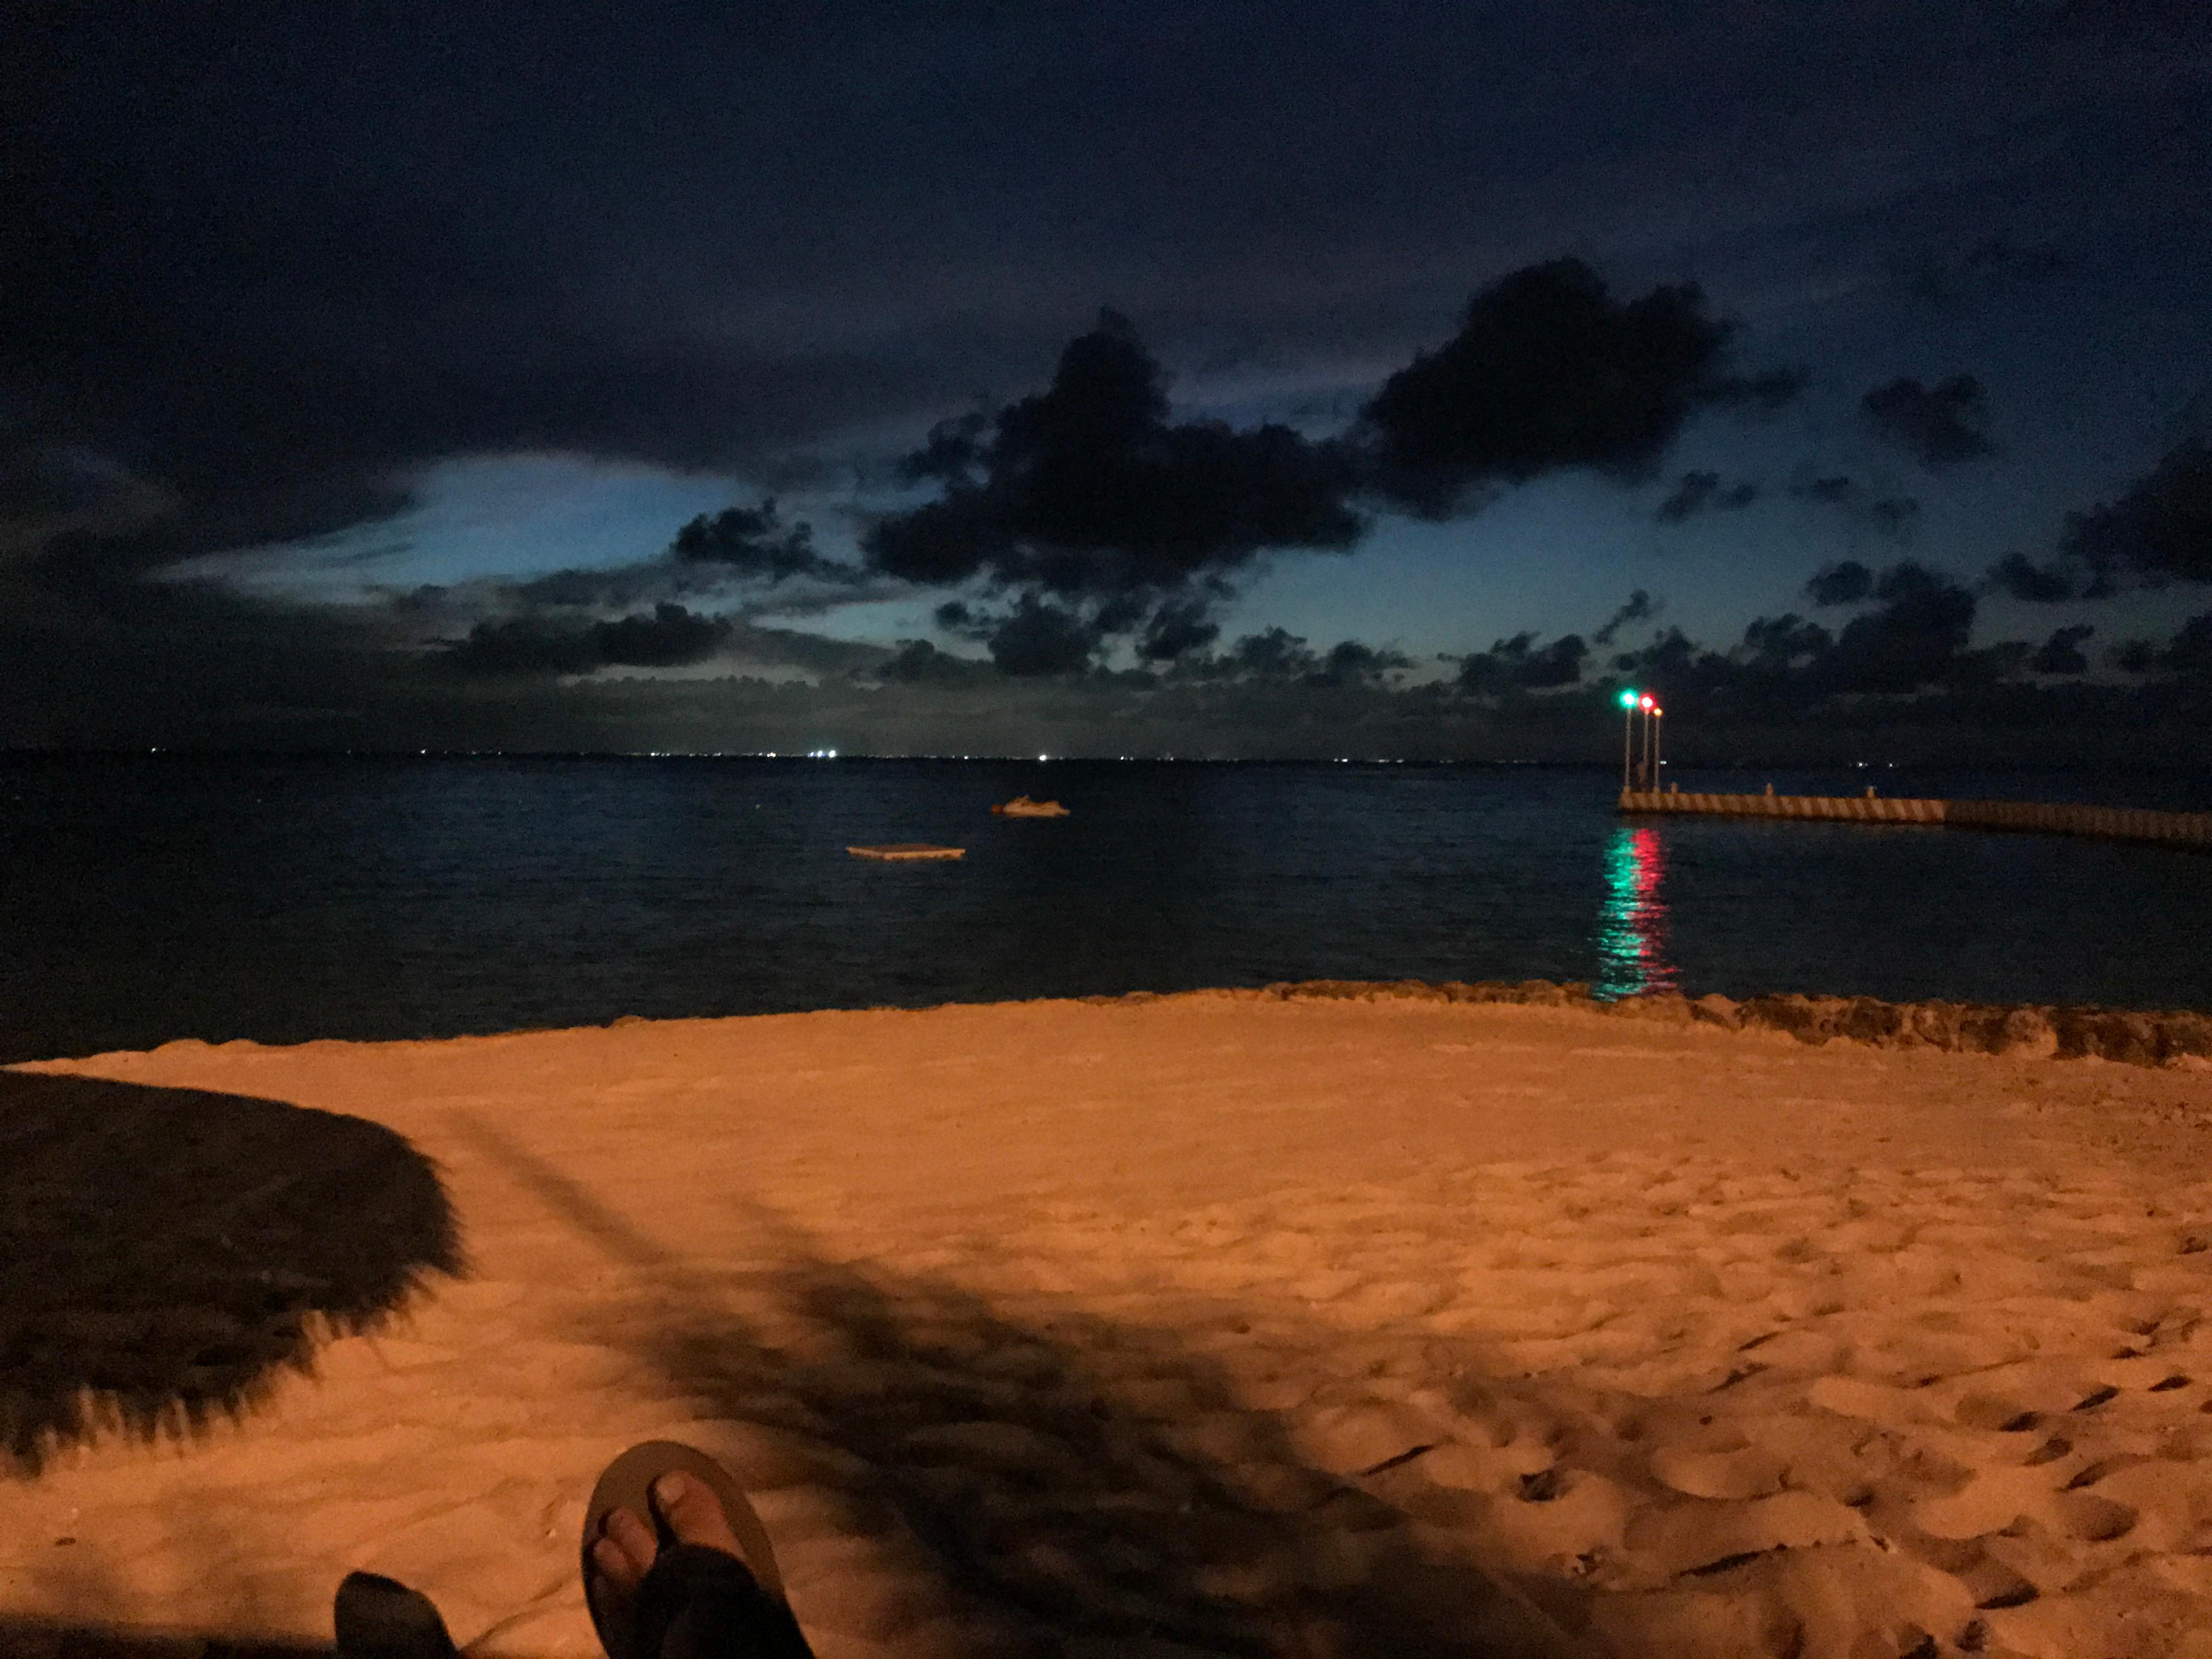 Night view from the beach